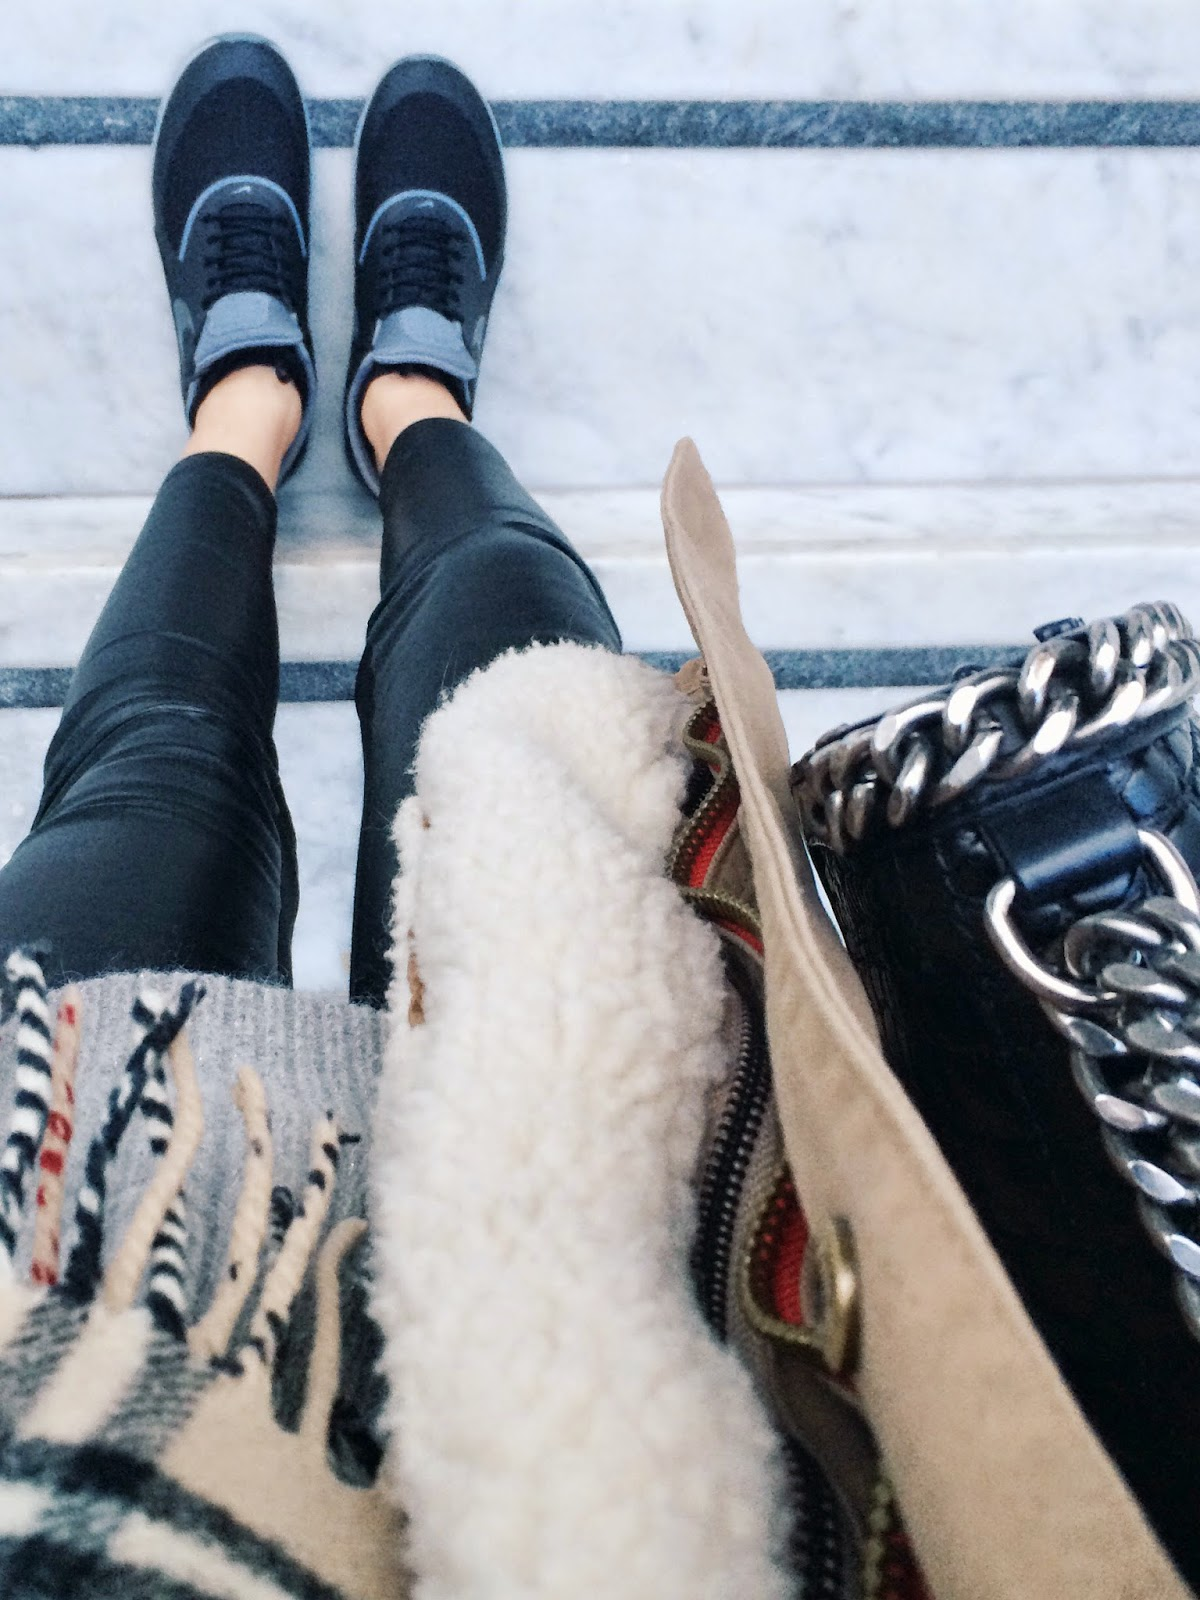 from where i stand, nike trainers, nike trainers street style, nike air max thea trainers in black and grey, burberry scarf, minusey parka, zara city bag croco, leather leggings, parka coat, shearling parka coat, camel parka